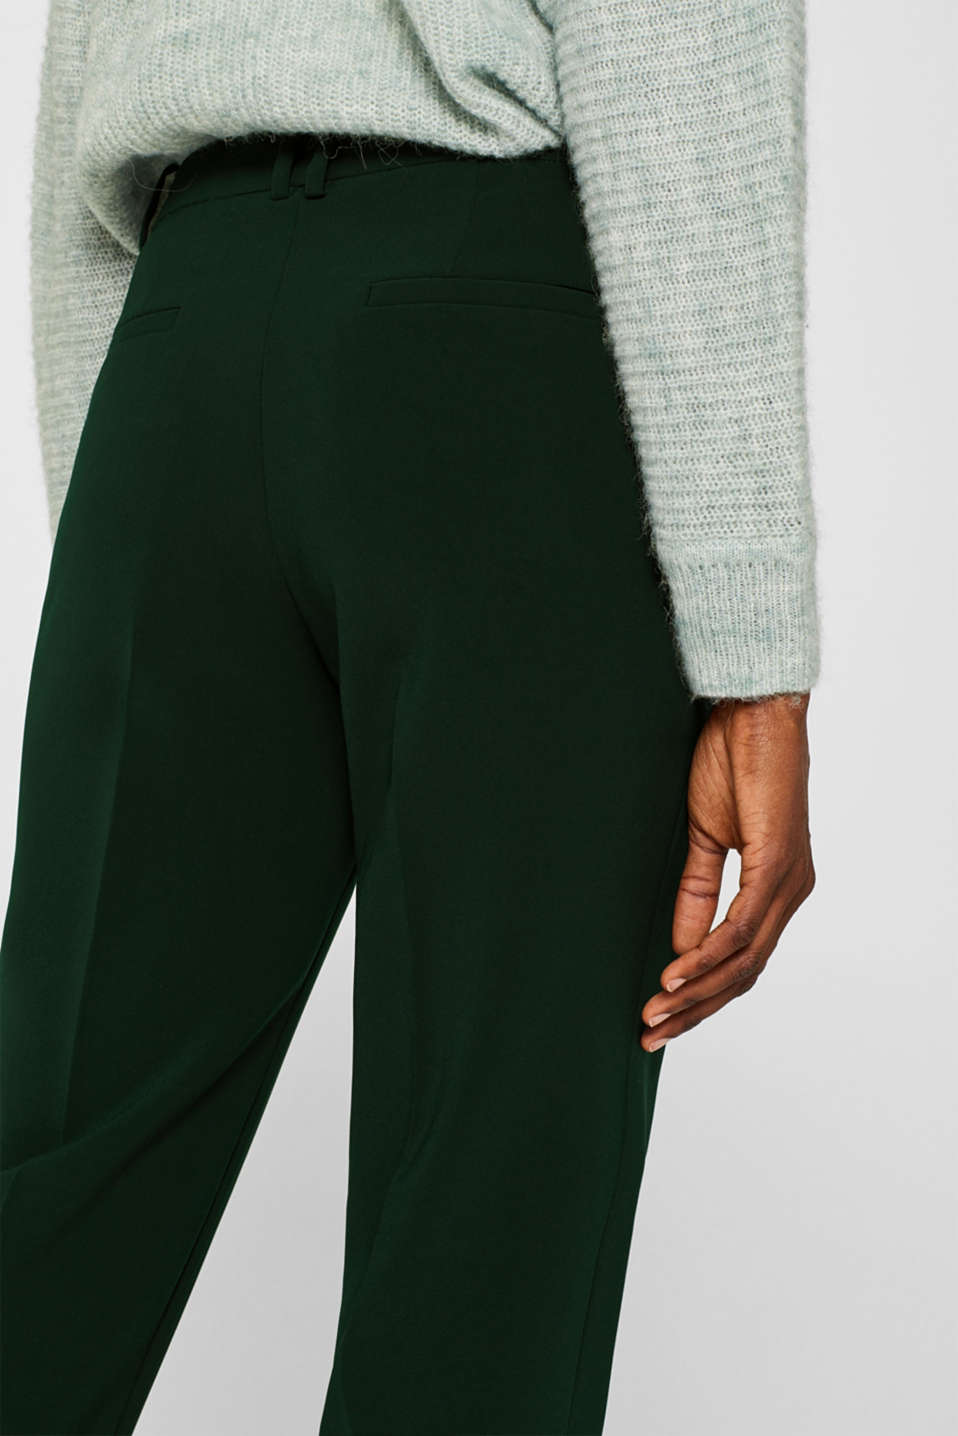 STITCHING mix + match stretch trousers with decorative stitching, DARK TEAL GREEN 2, detail image number 5